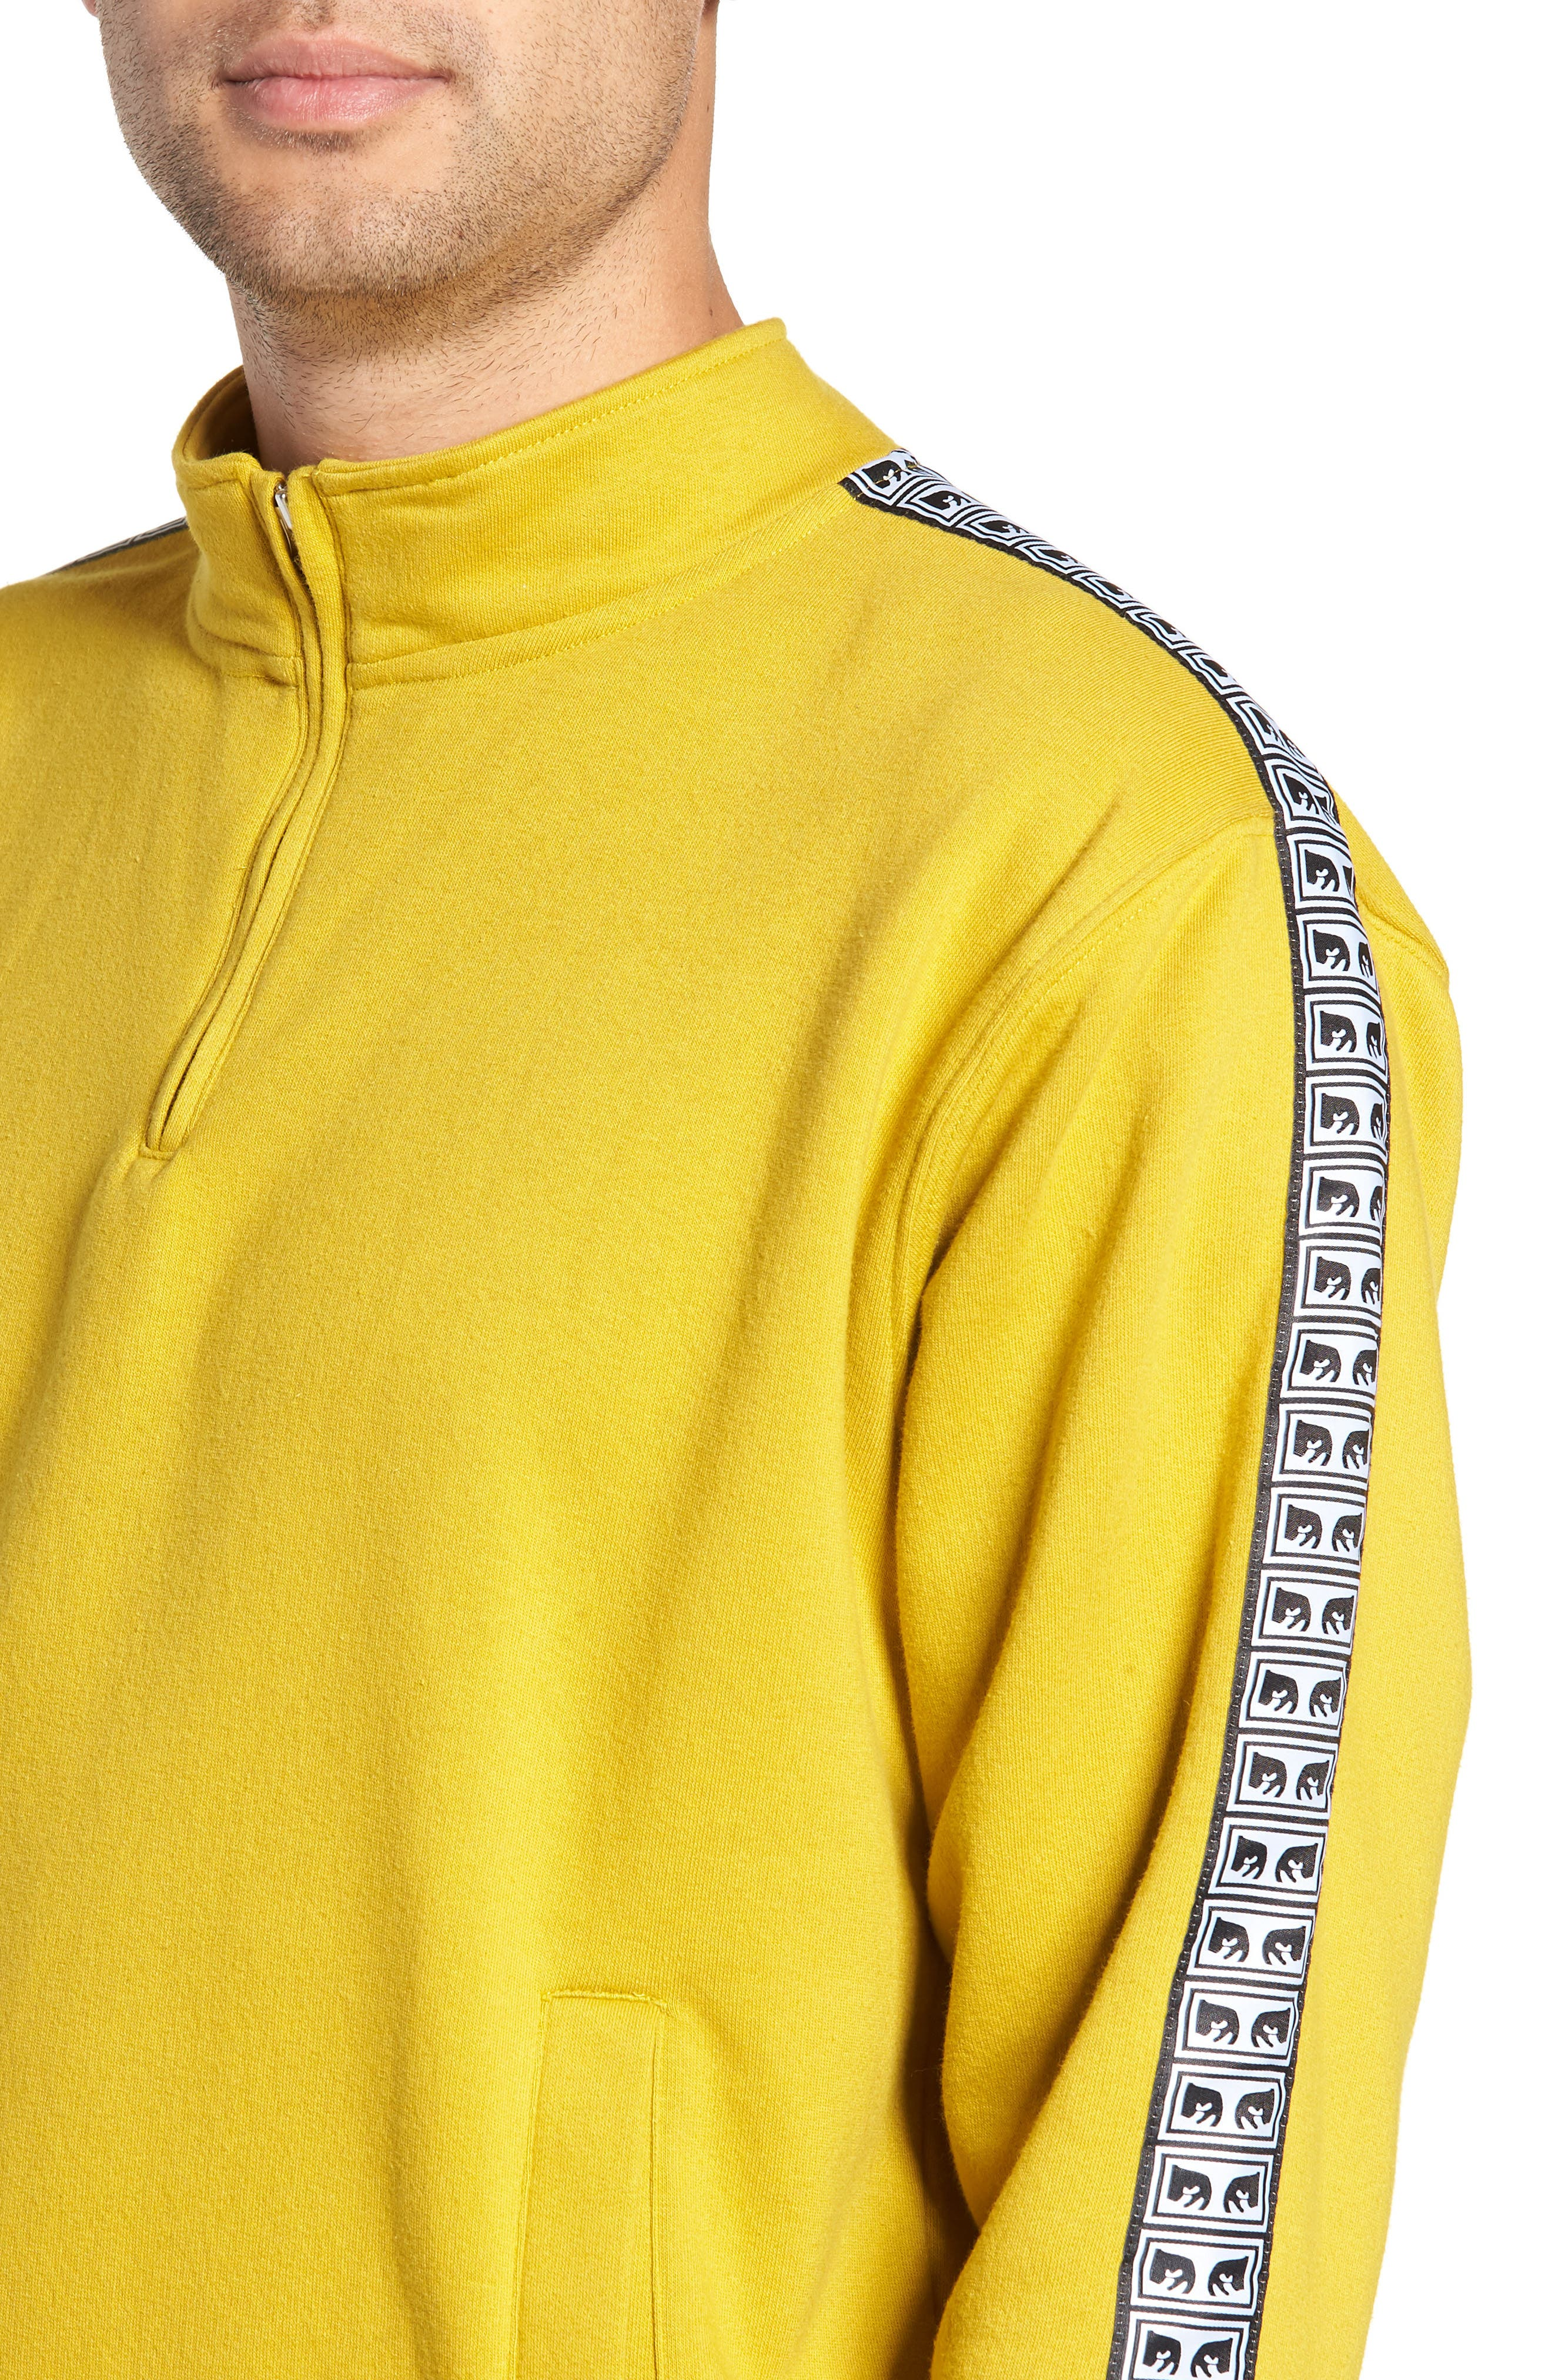 OBEY, Bridges Logo Tape Quarter Zip Pullover, Alternate thumbnail 4, color, 700